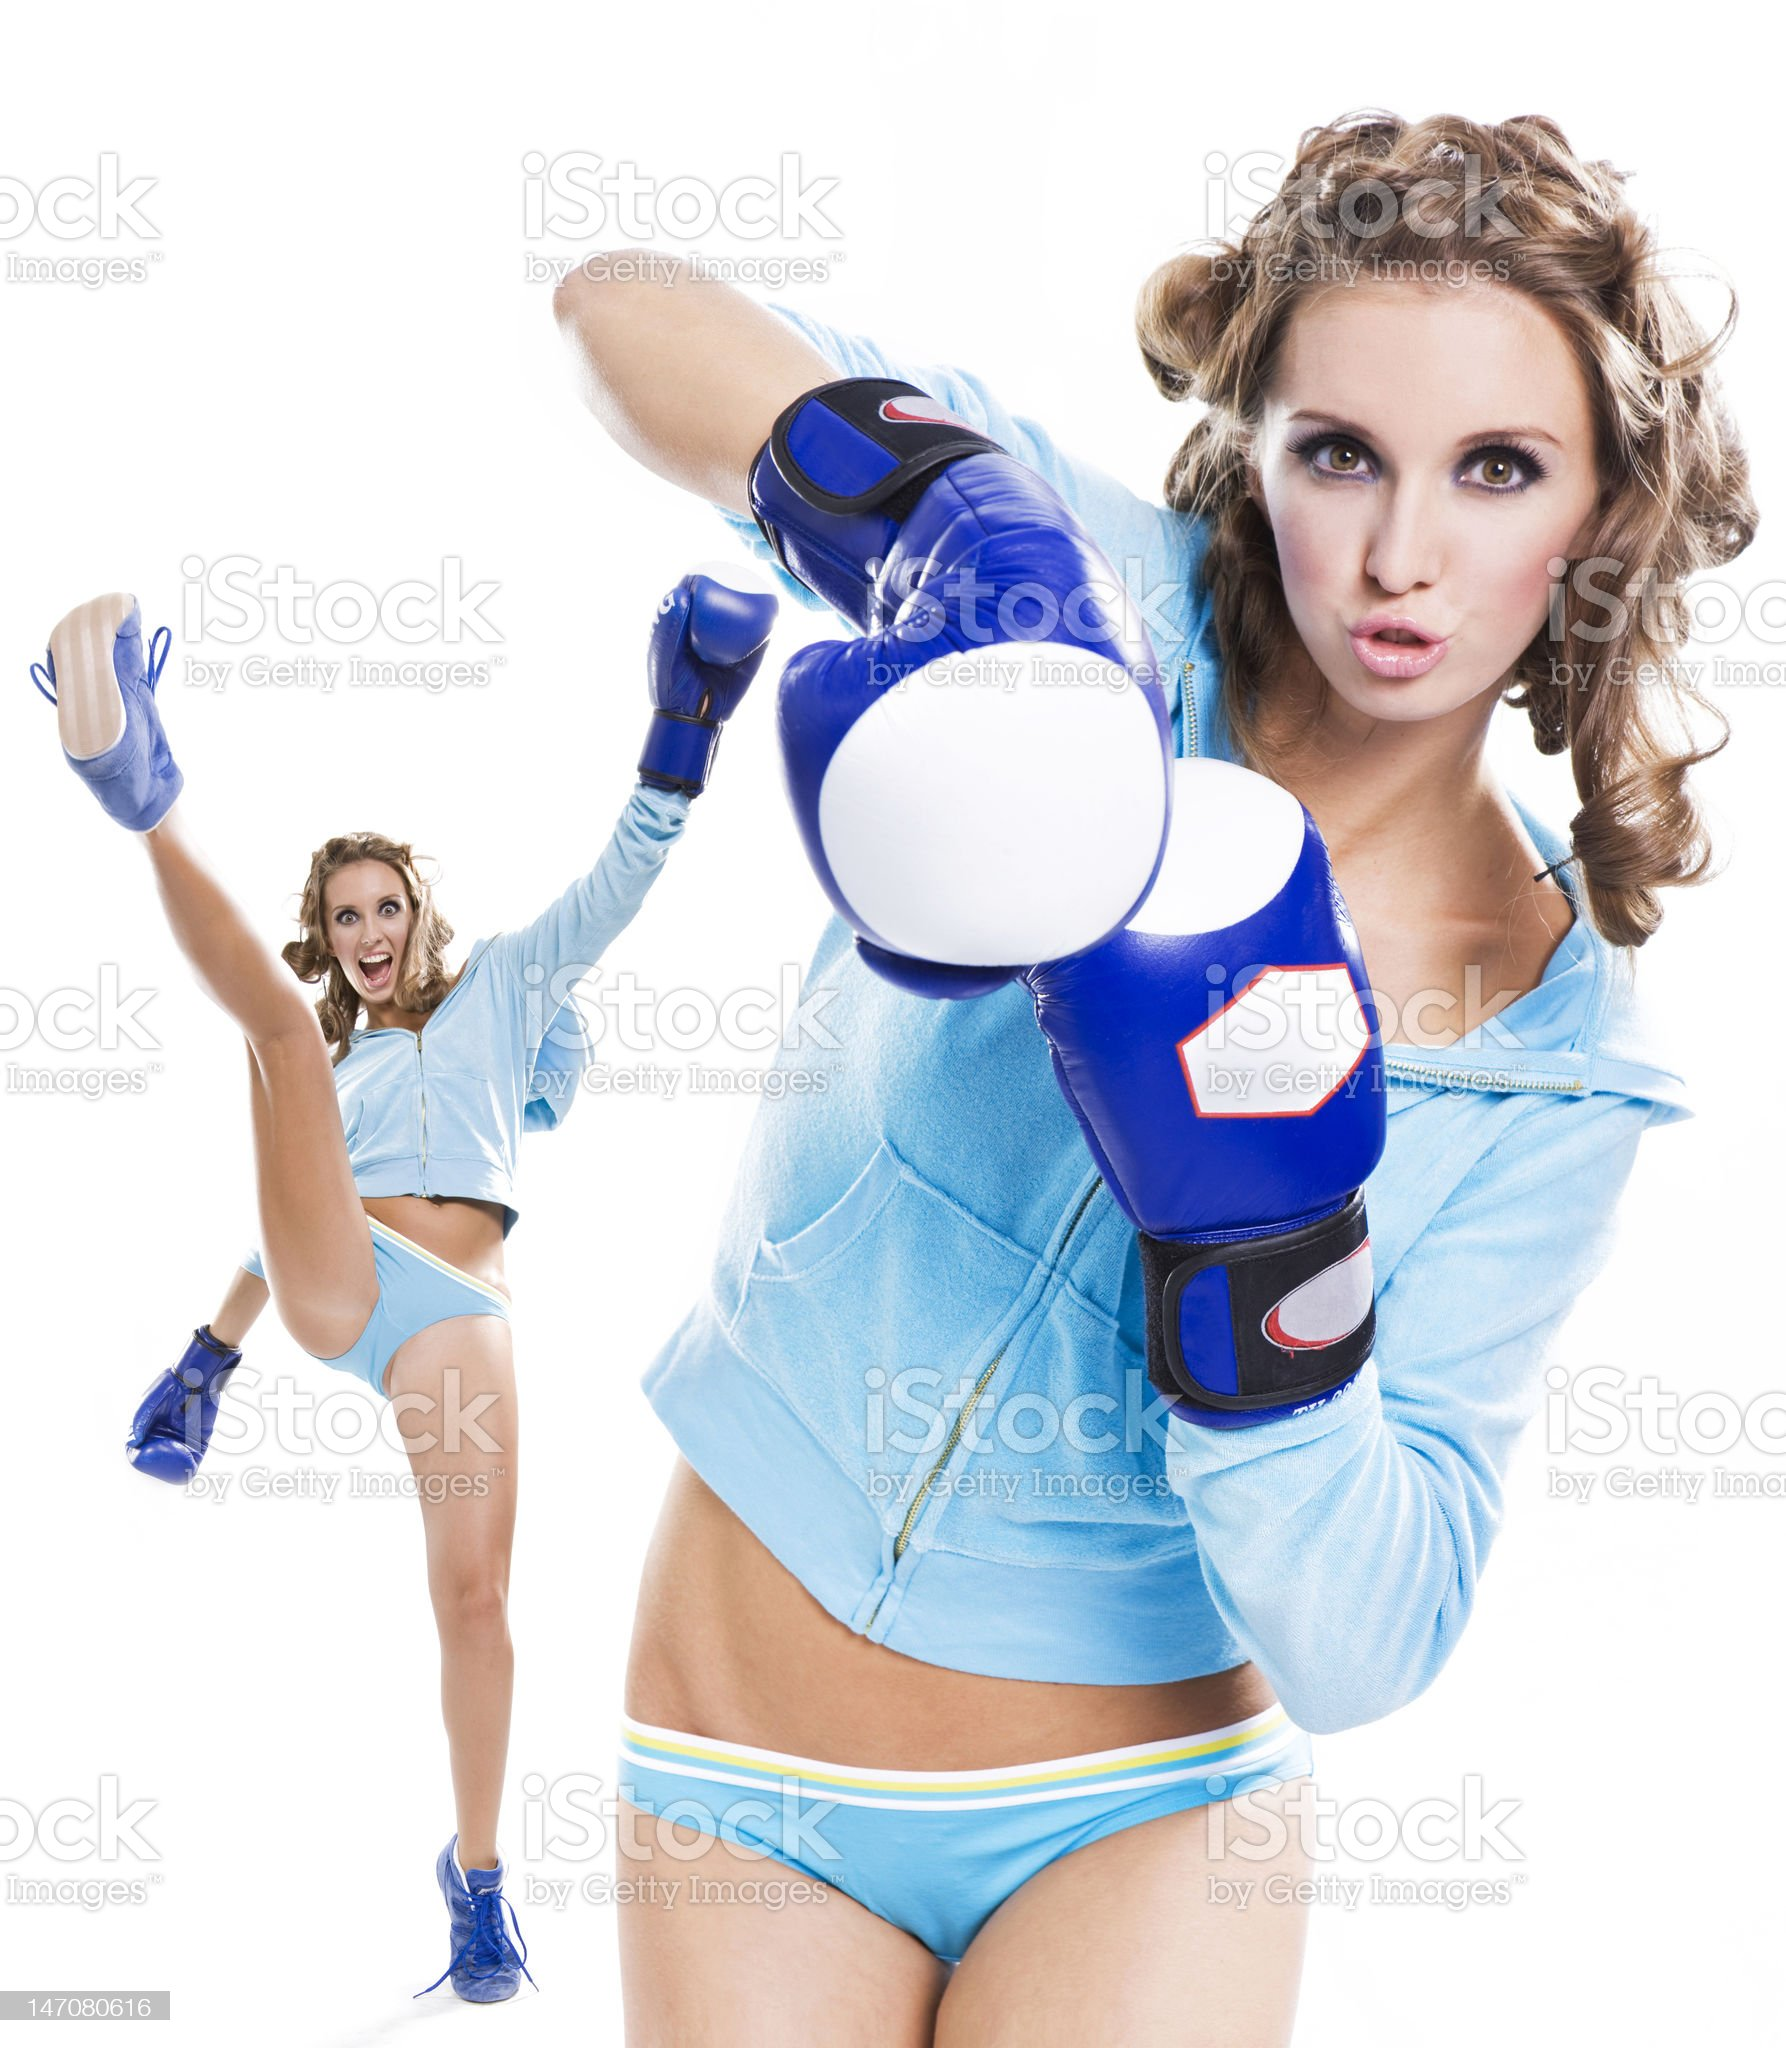 slender girl fun playing sports boxing royalty-free stock photo